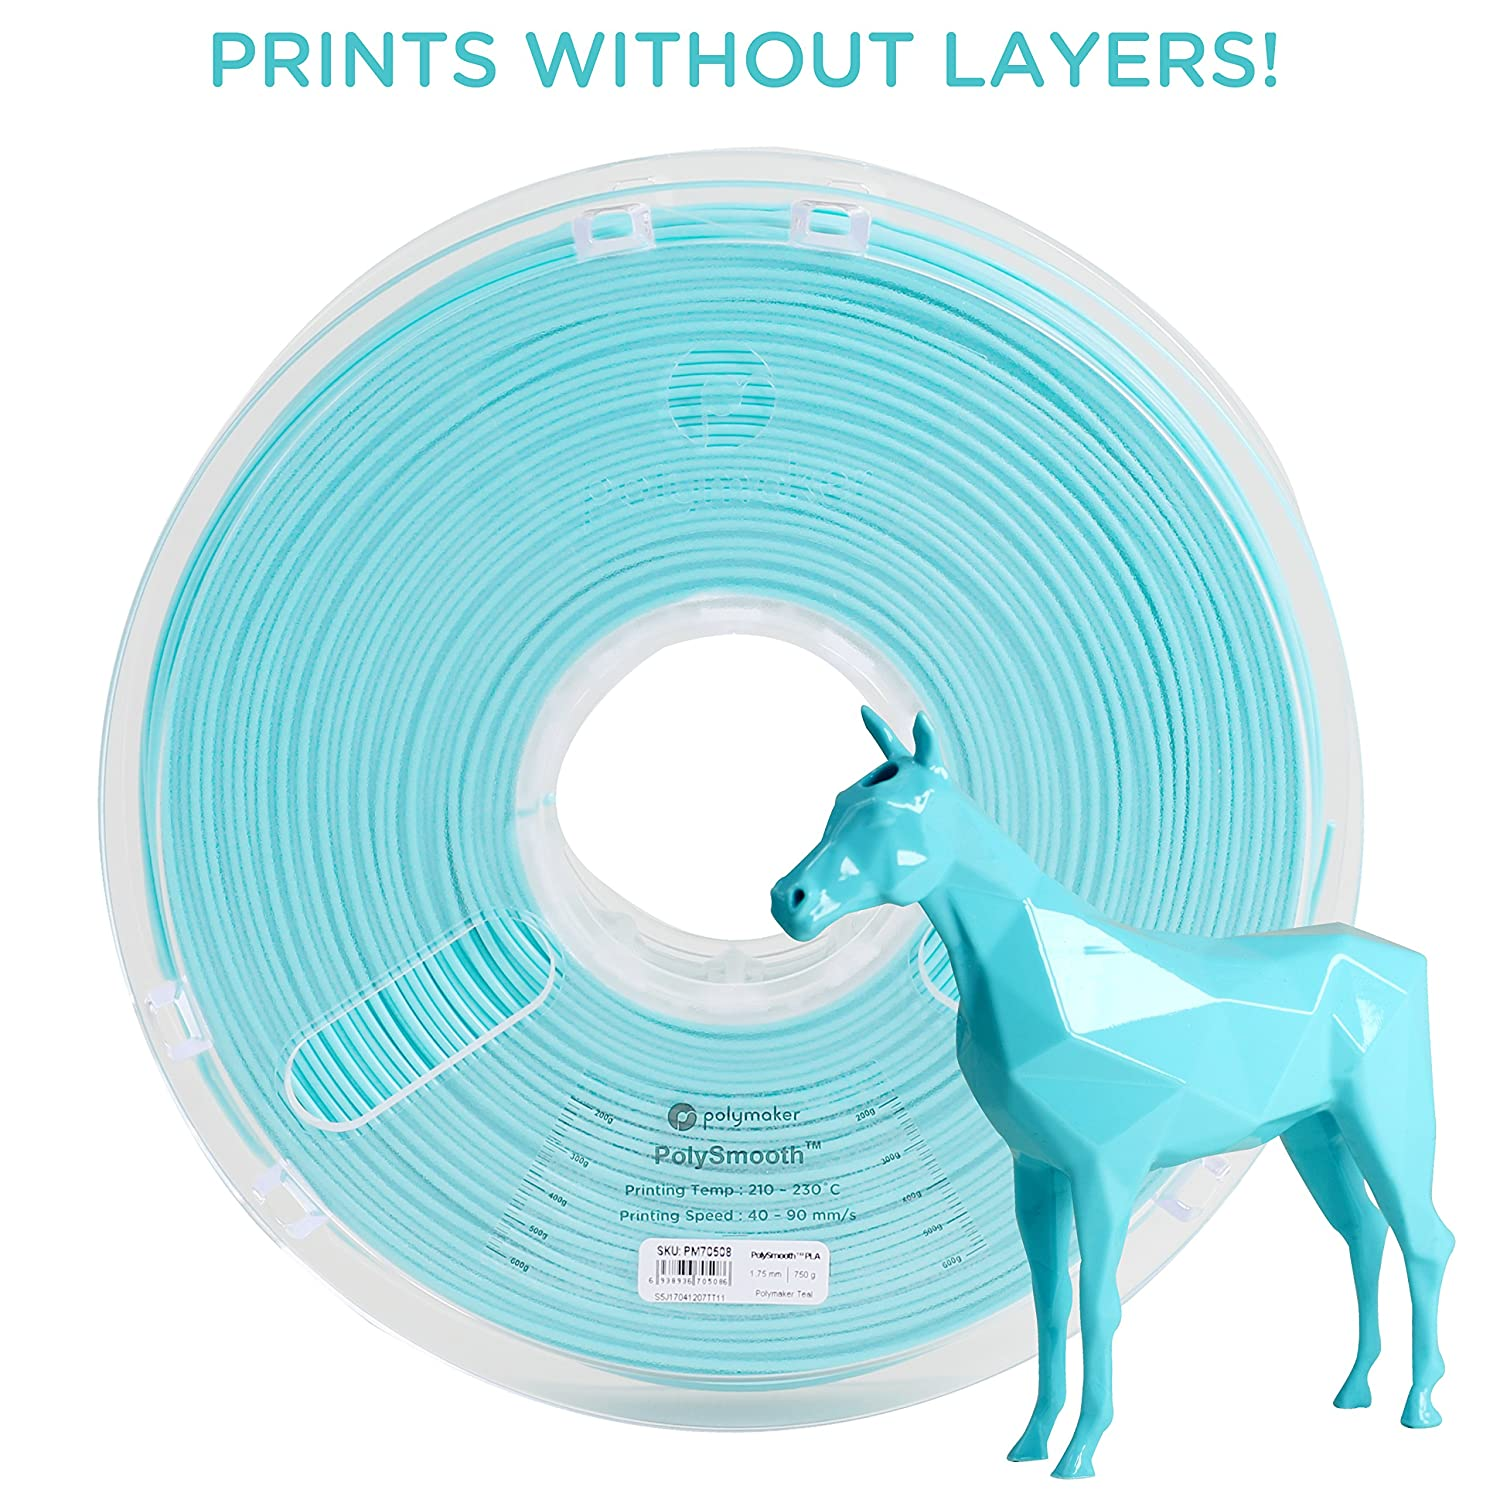 Polymaker PolySmooth 3D Printer Filament, Layer-Free 3D filament, Polymaker Teal, 2.85 mm Filament, 750g